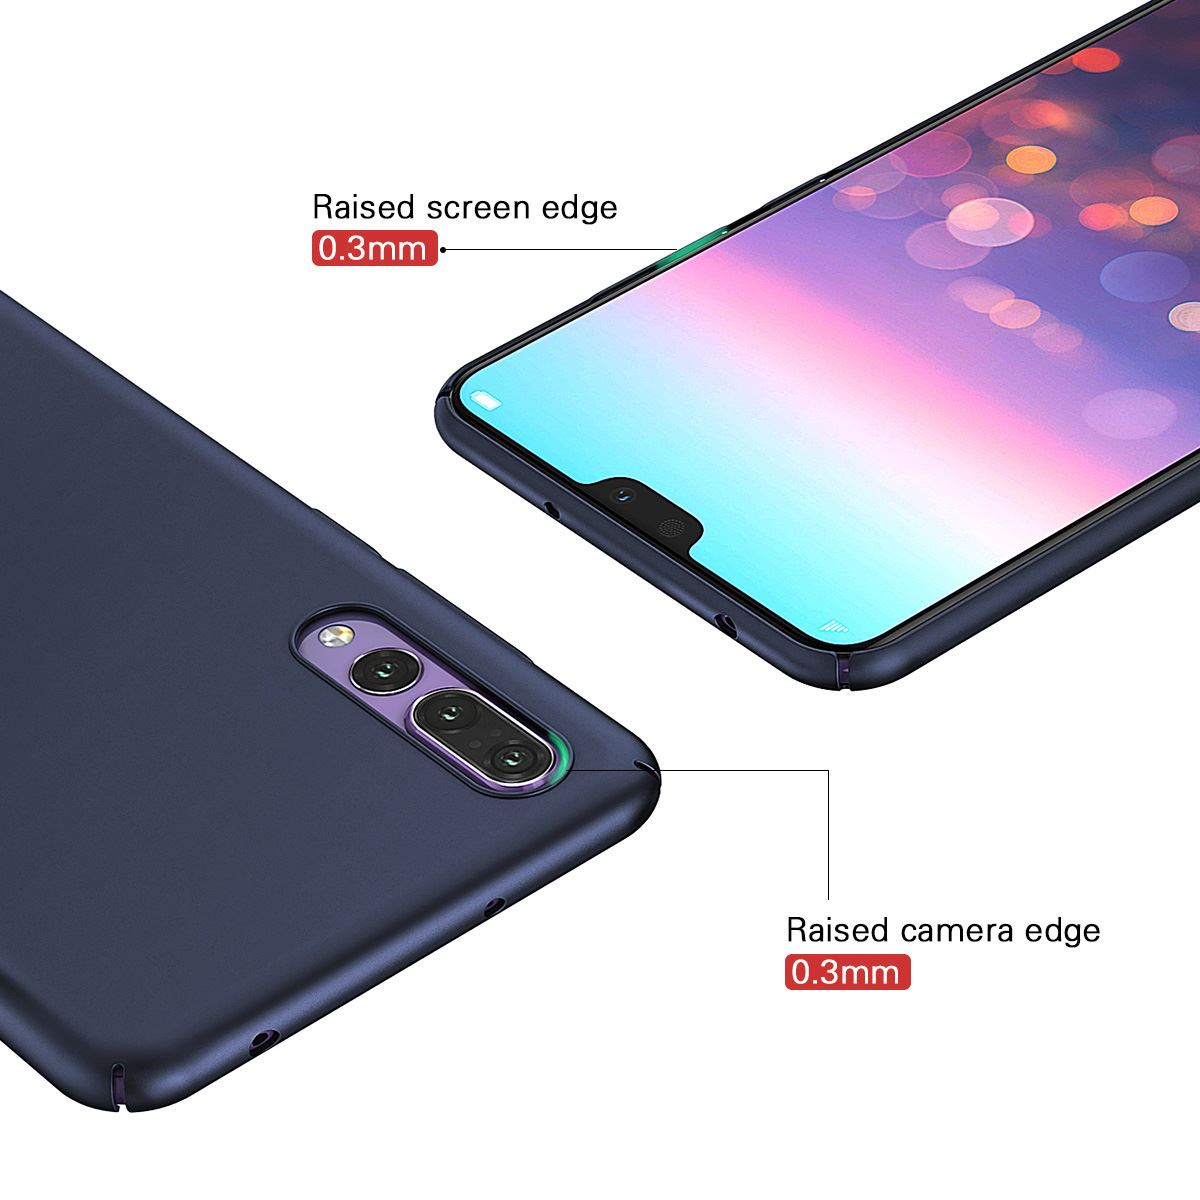 Luxury-Protective-Slim-Thin-Hard-Back-Case-Cover-For-Huawei-P20-Pro-P10-P-Smart thumbnail 42